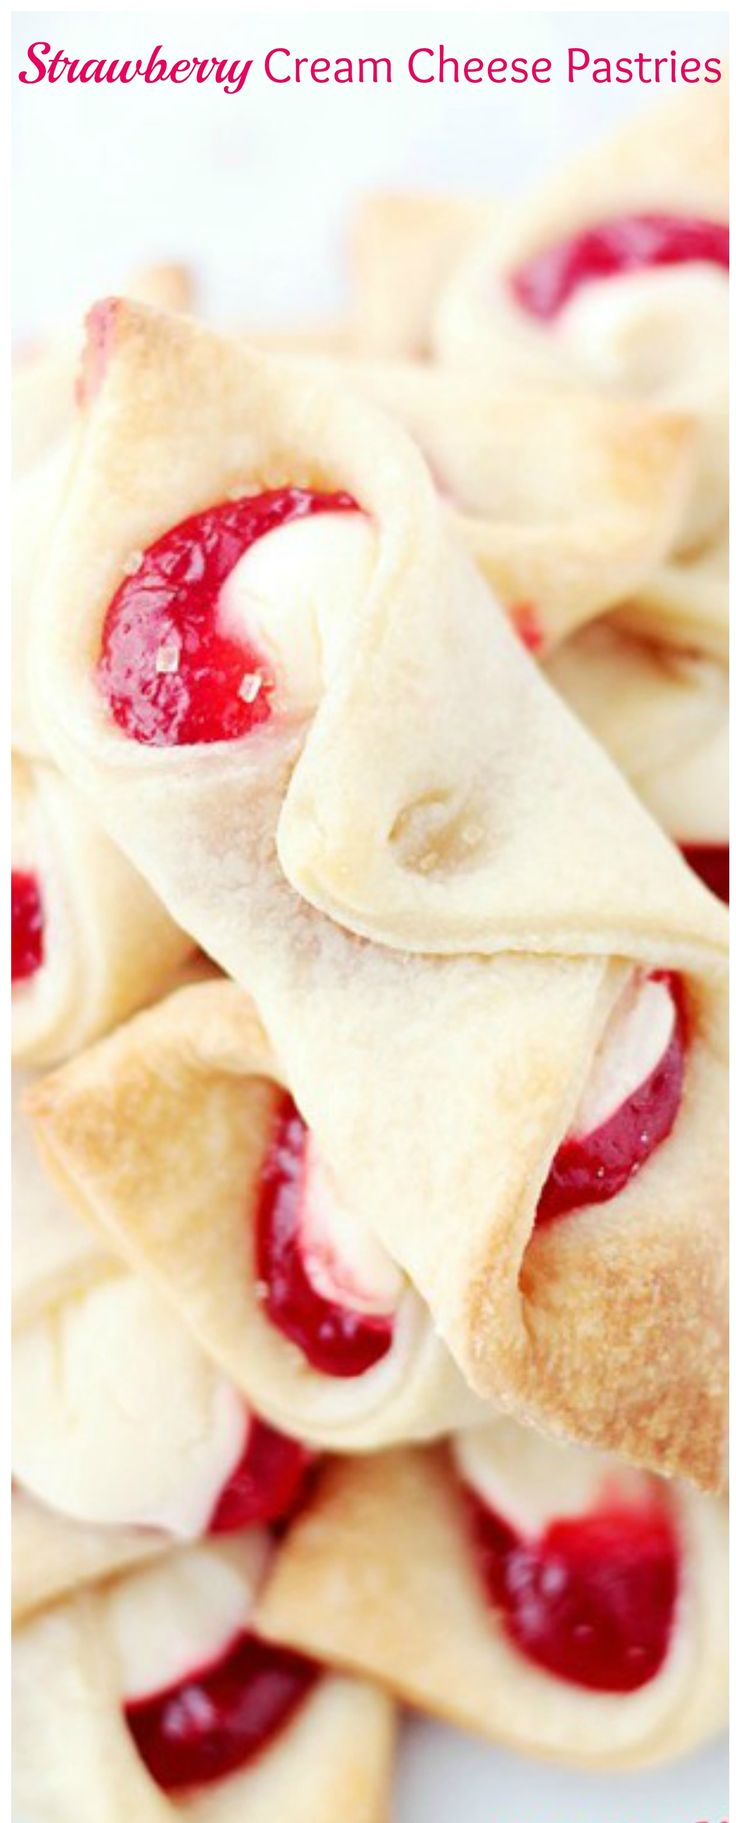 Soft, flaky and delicious cream cheese pastries filled with a sweet cream cheese mixture and strawberry jam.